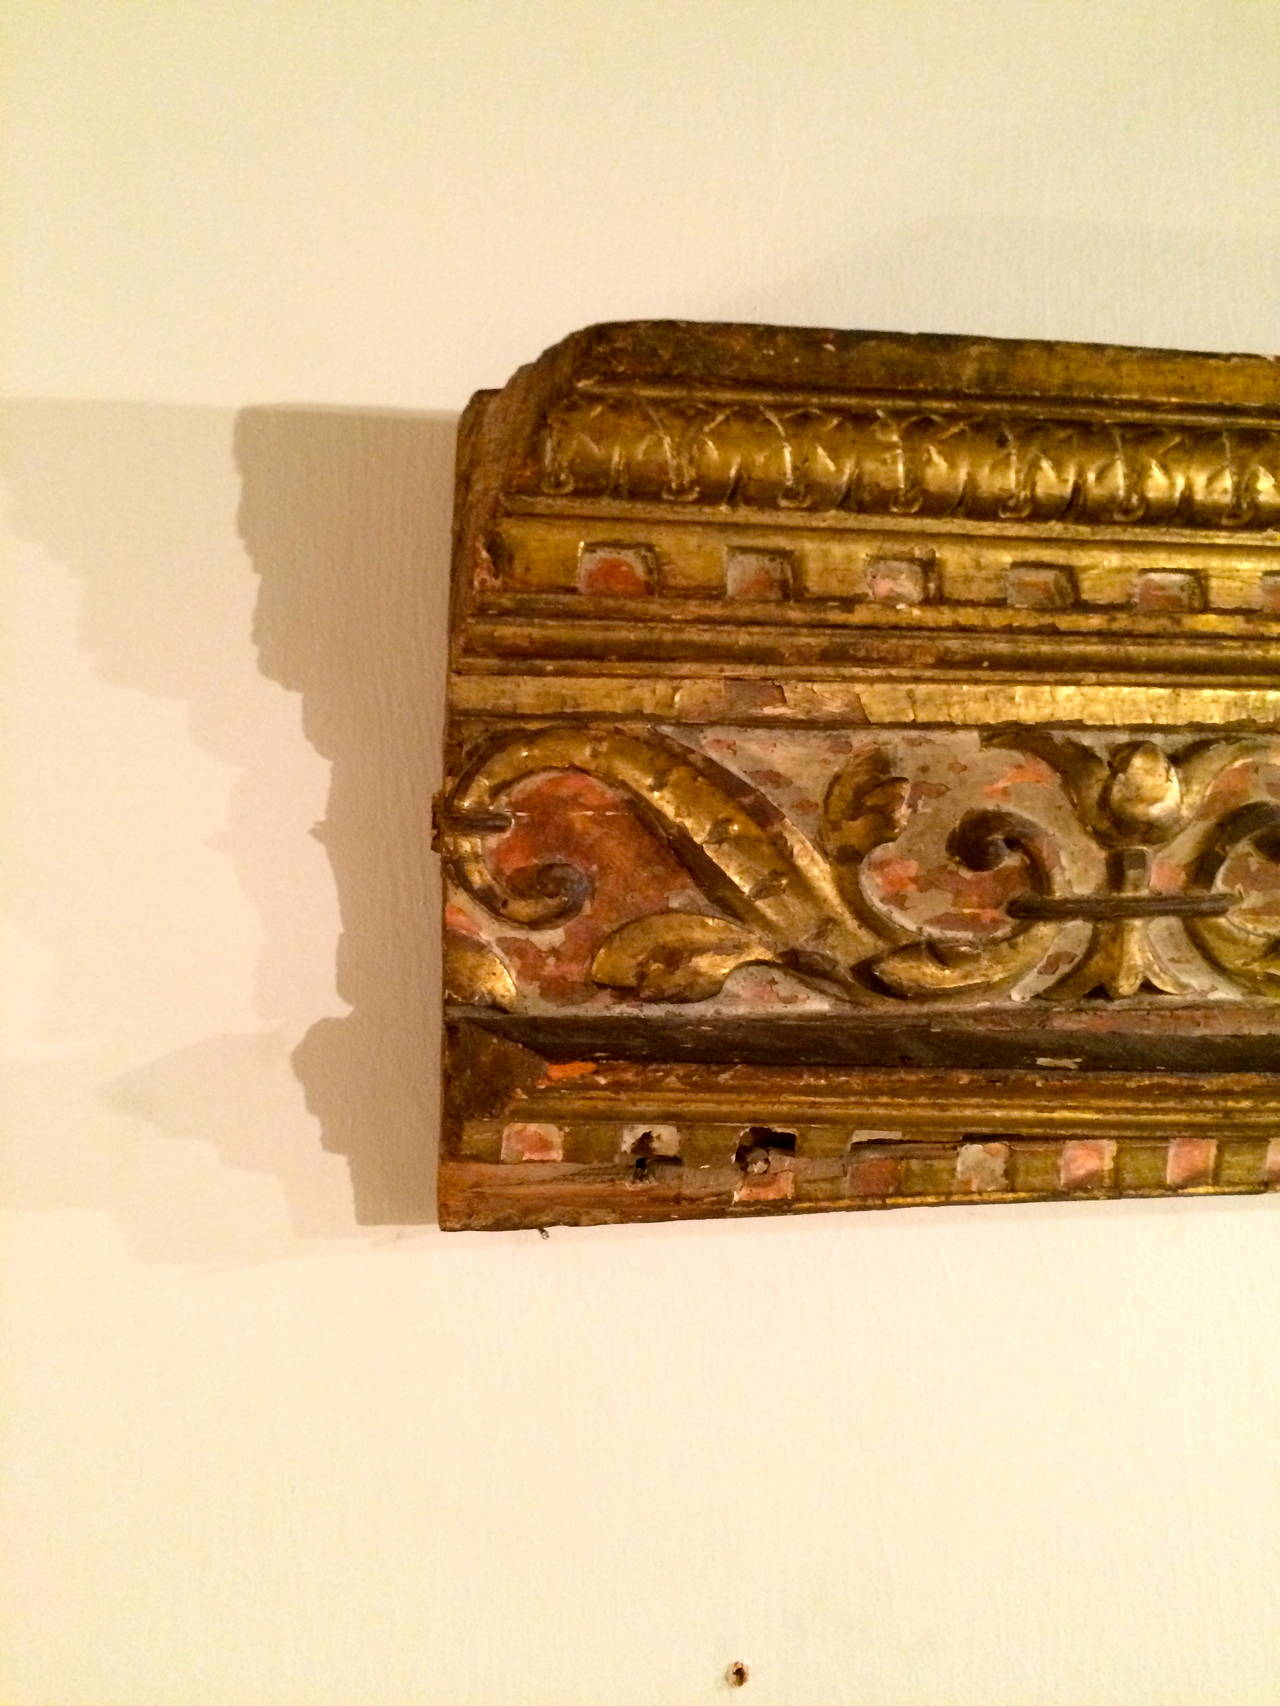 18th Century Italian Giltwood Architectural Carving In Good Condition For Sale In Stamford, CT